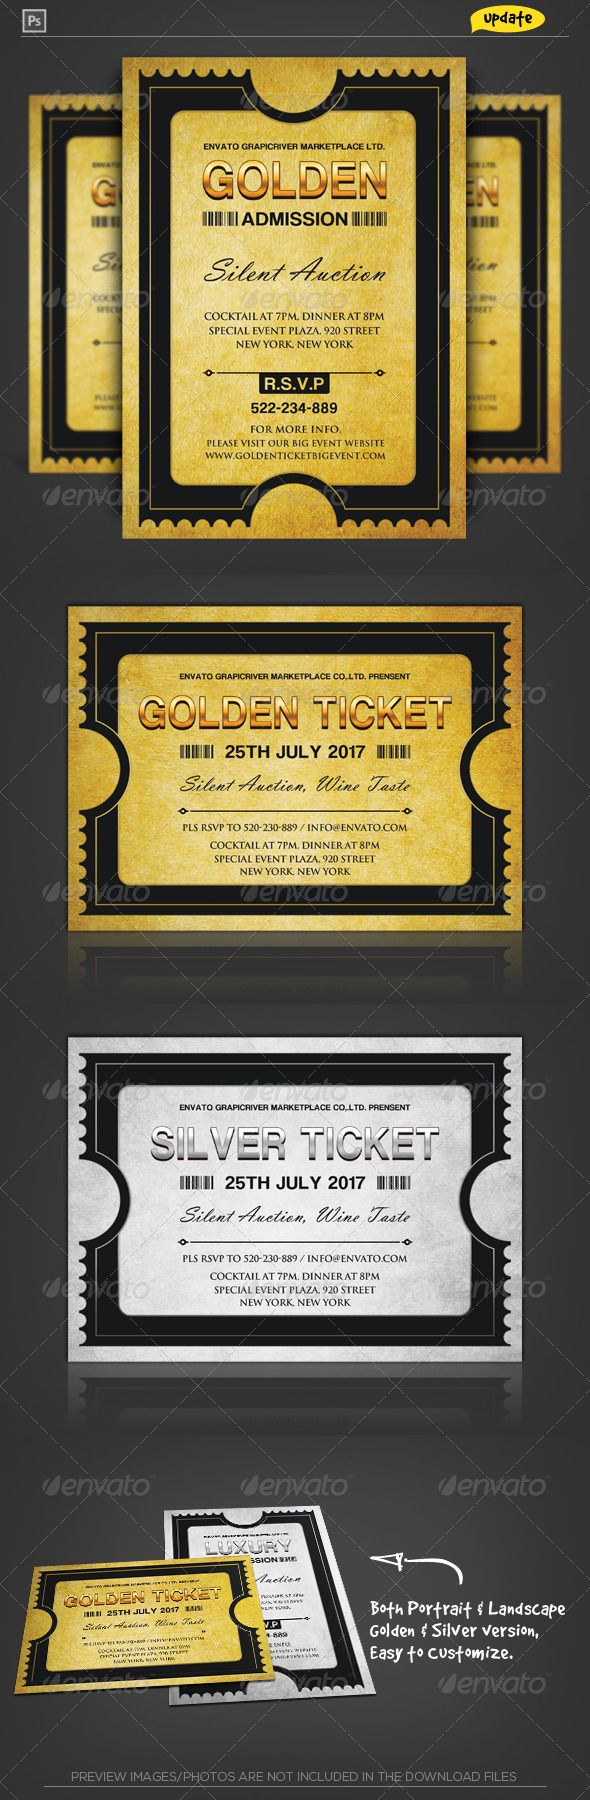 Golden Silver Ticket Corporate Invitation I — Photoshop PSD #modern #special • Available here → https://graphicriver.net/item/golden-silver-ticket-corporate-invitation-i/2064967?ref=pxcr